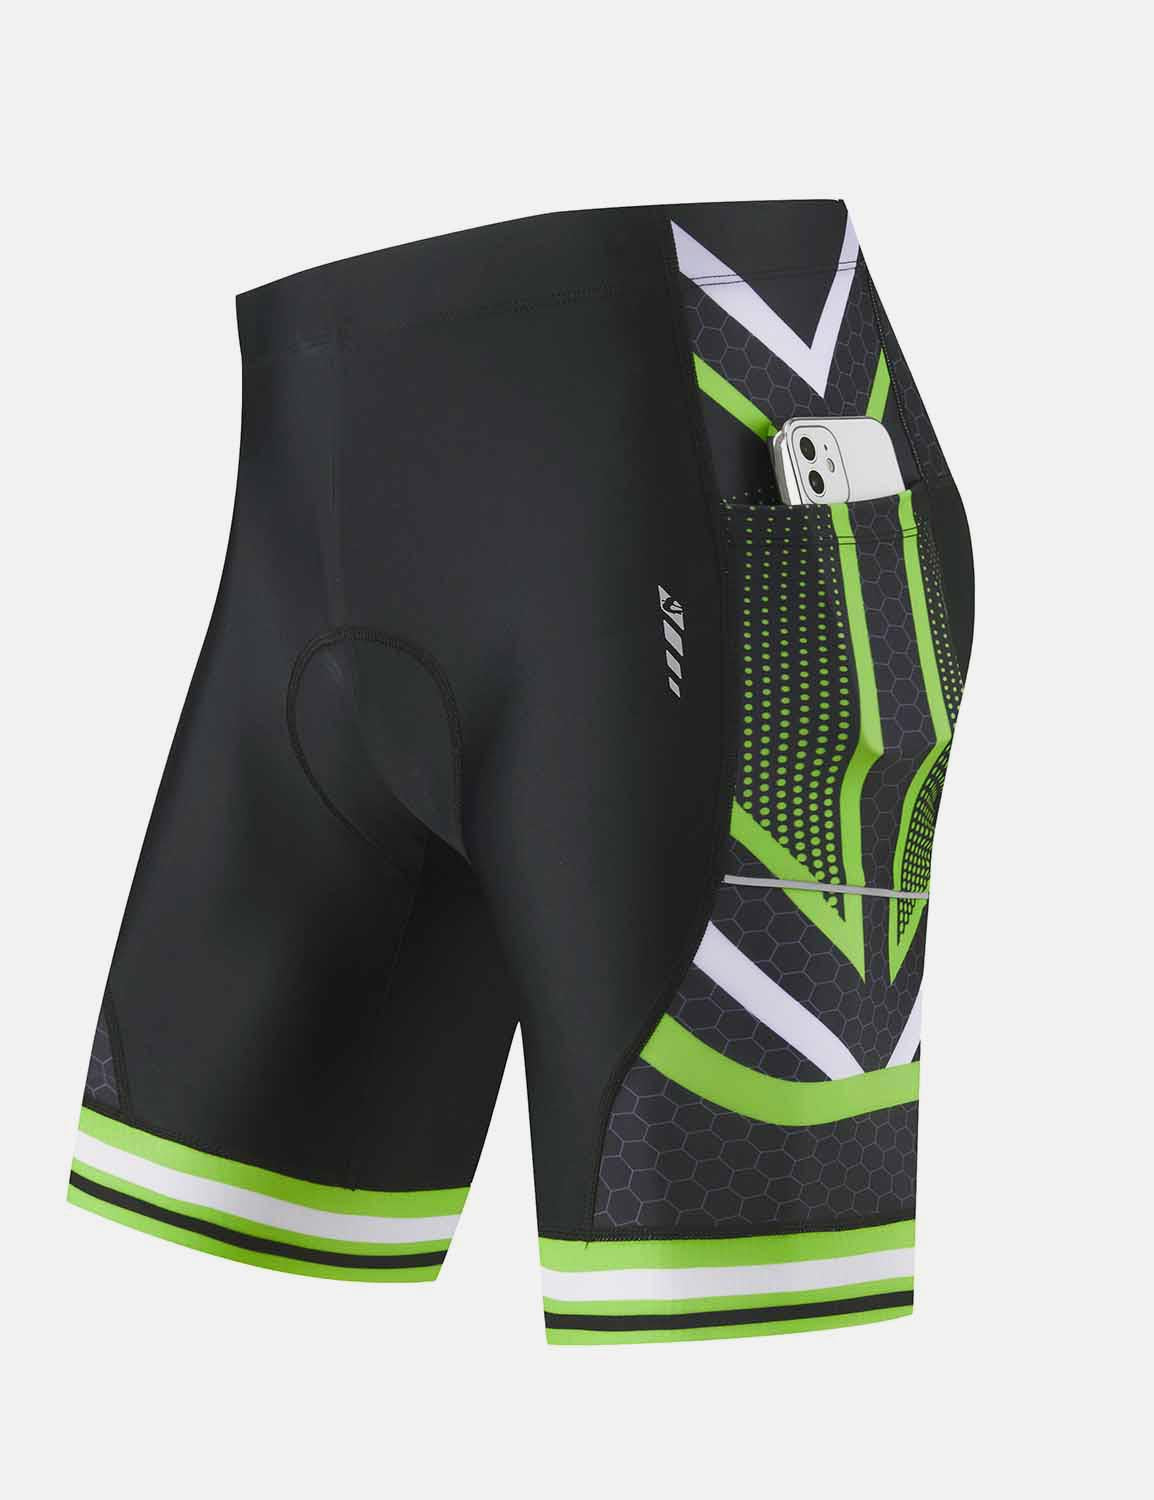 Baleaf Mens 4D Chamois Padded Digital Printed Cycling Shorts w Seamless Pockets Green side